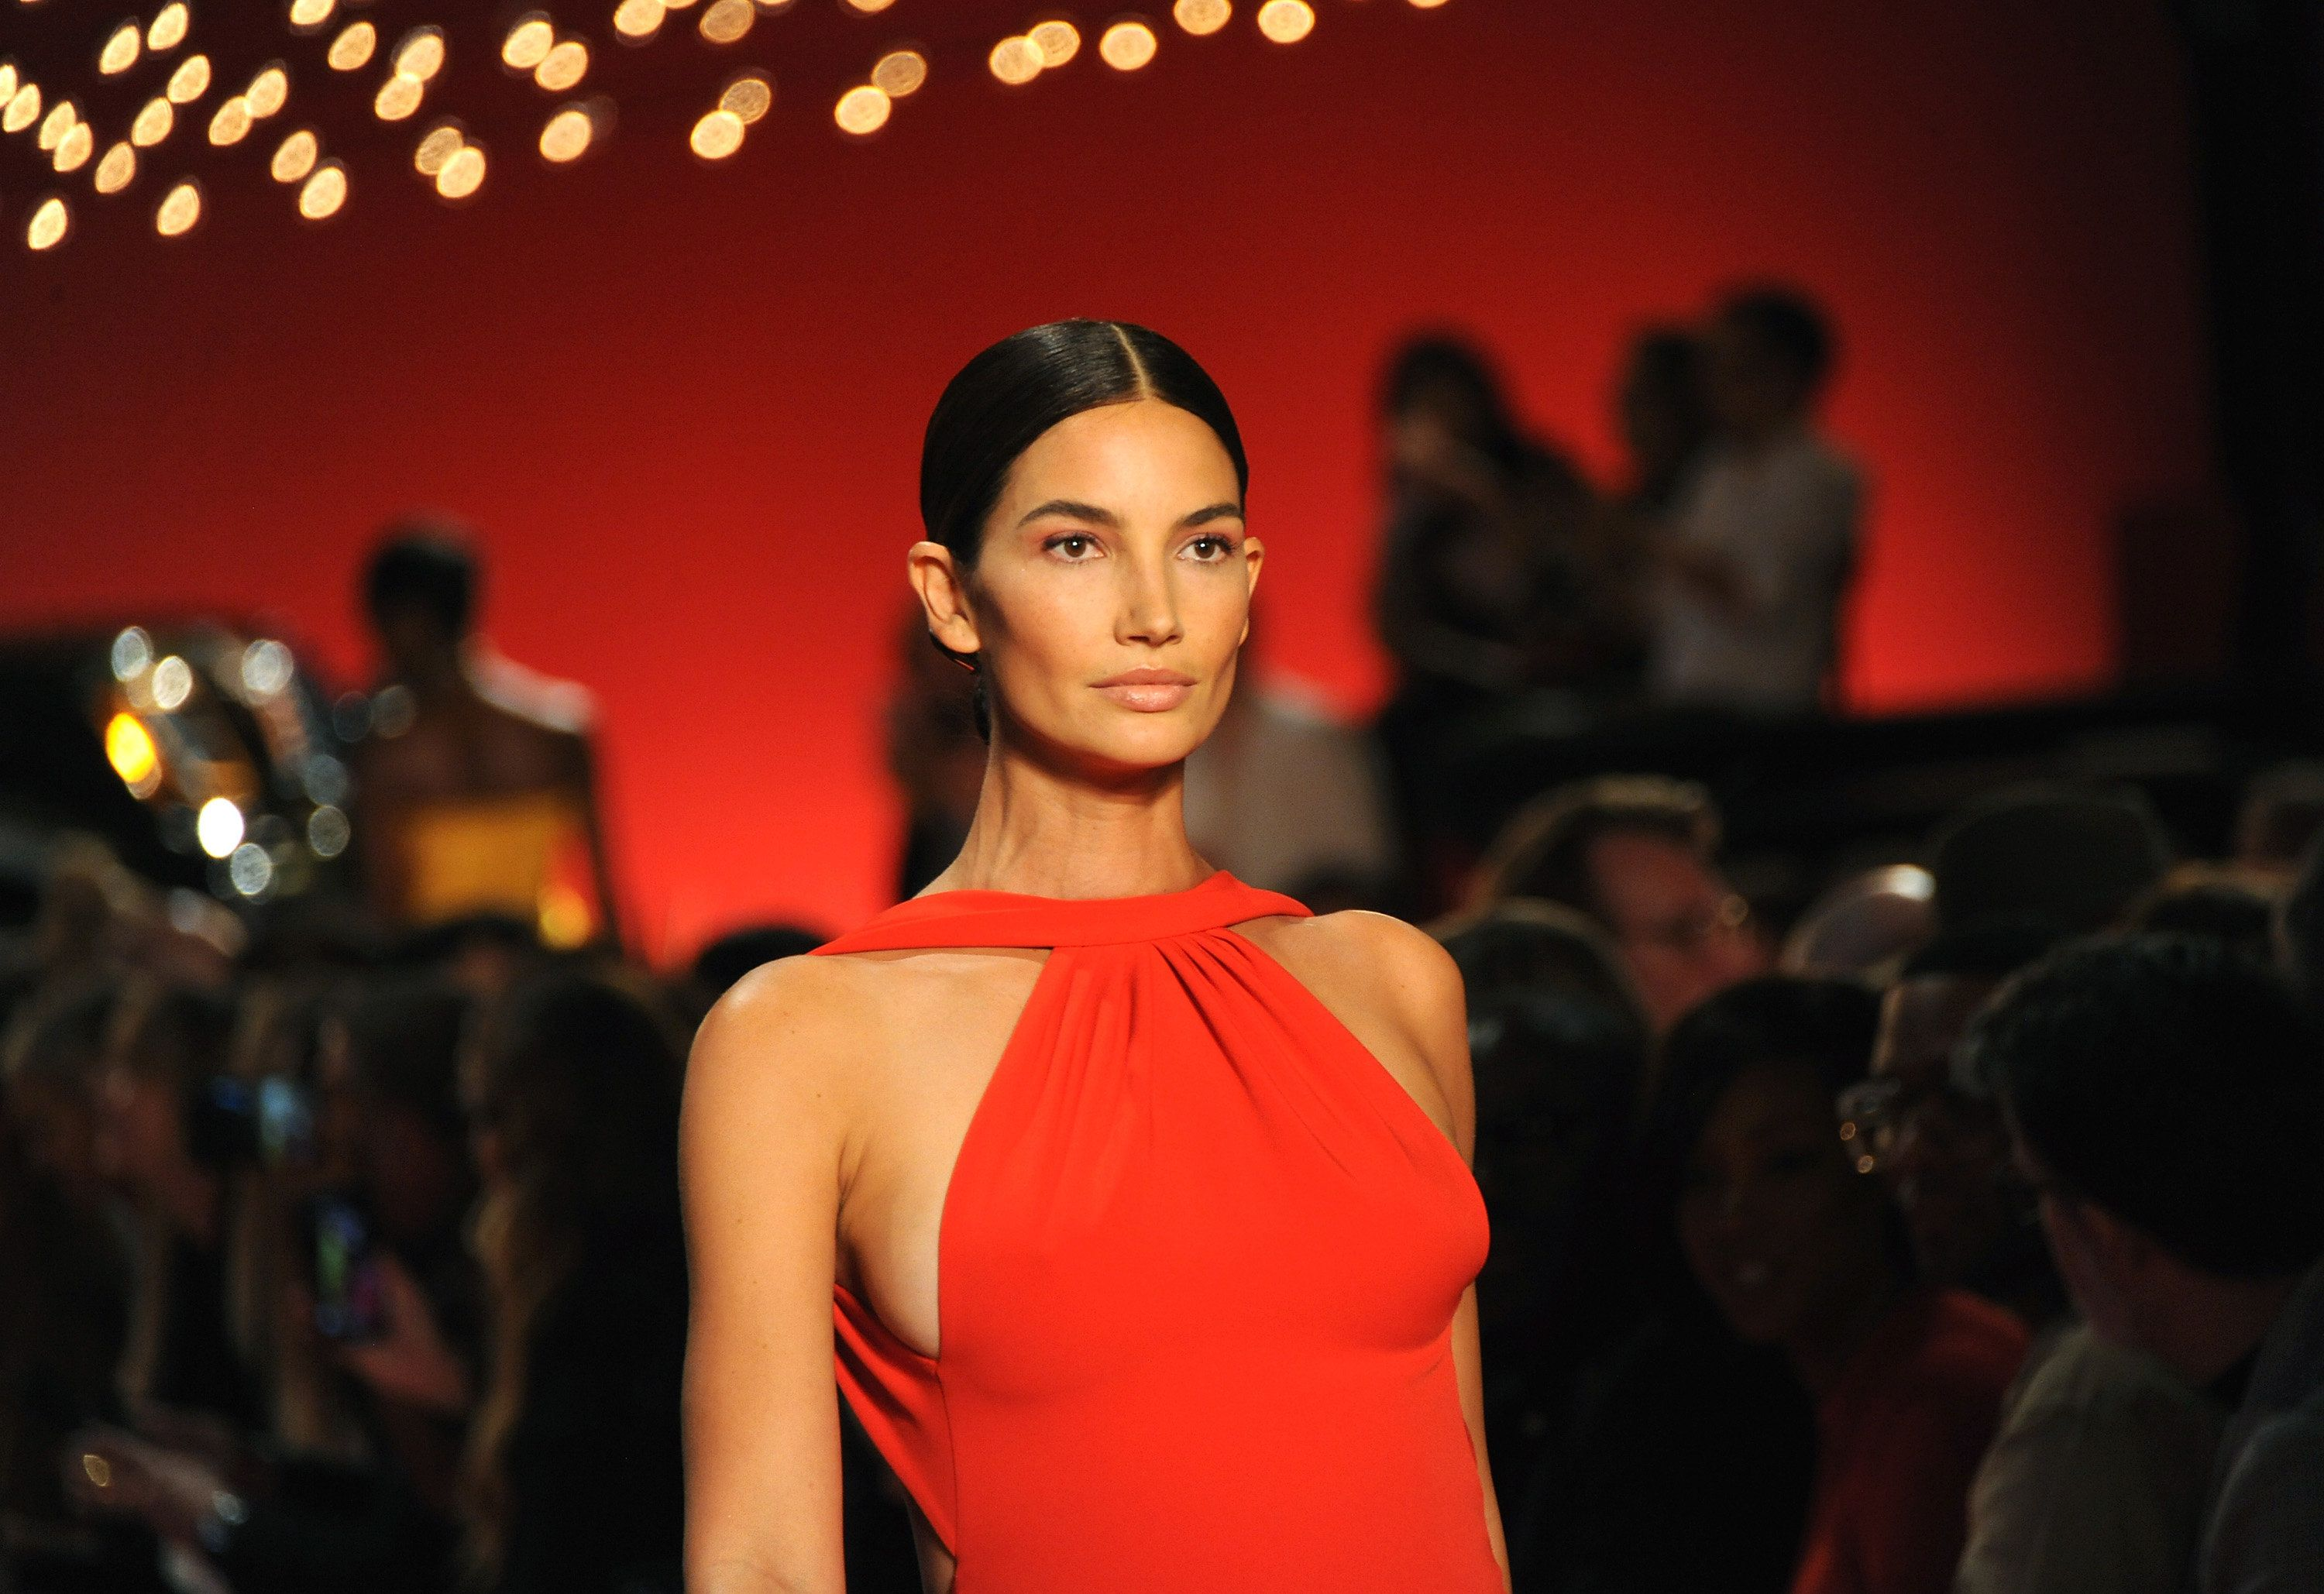 Model Lily Aldridge walks the runway for the Brandon Maxwell fashion show during New York Fashion Week, Sept. 8.